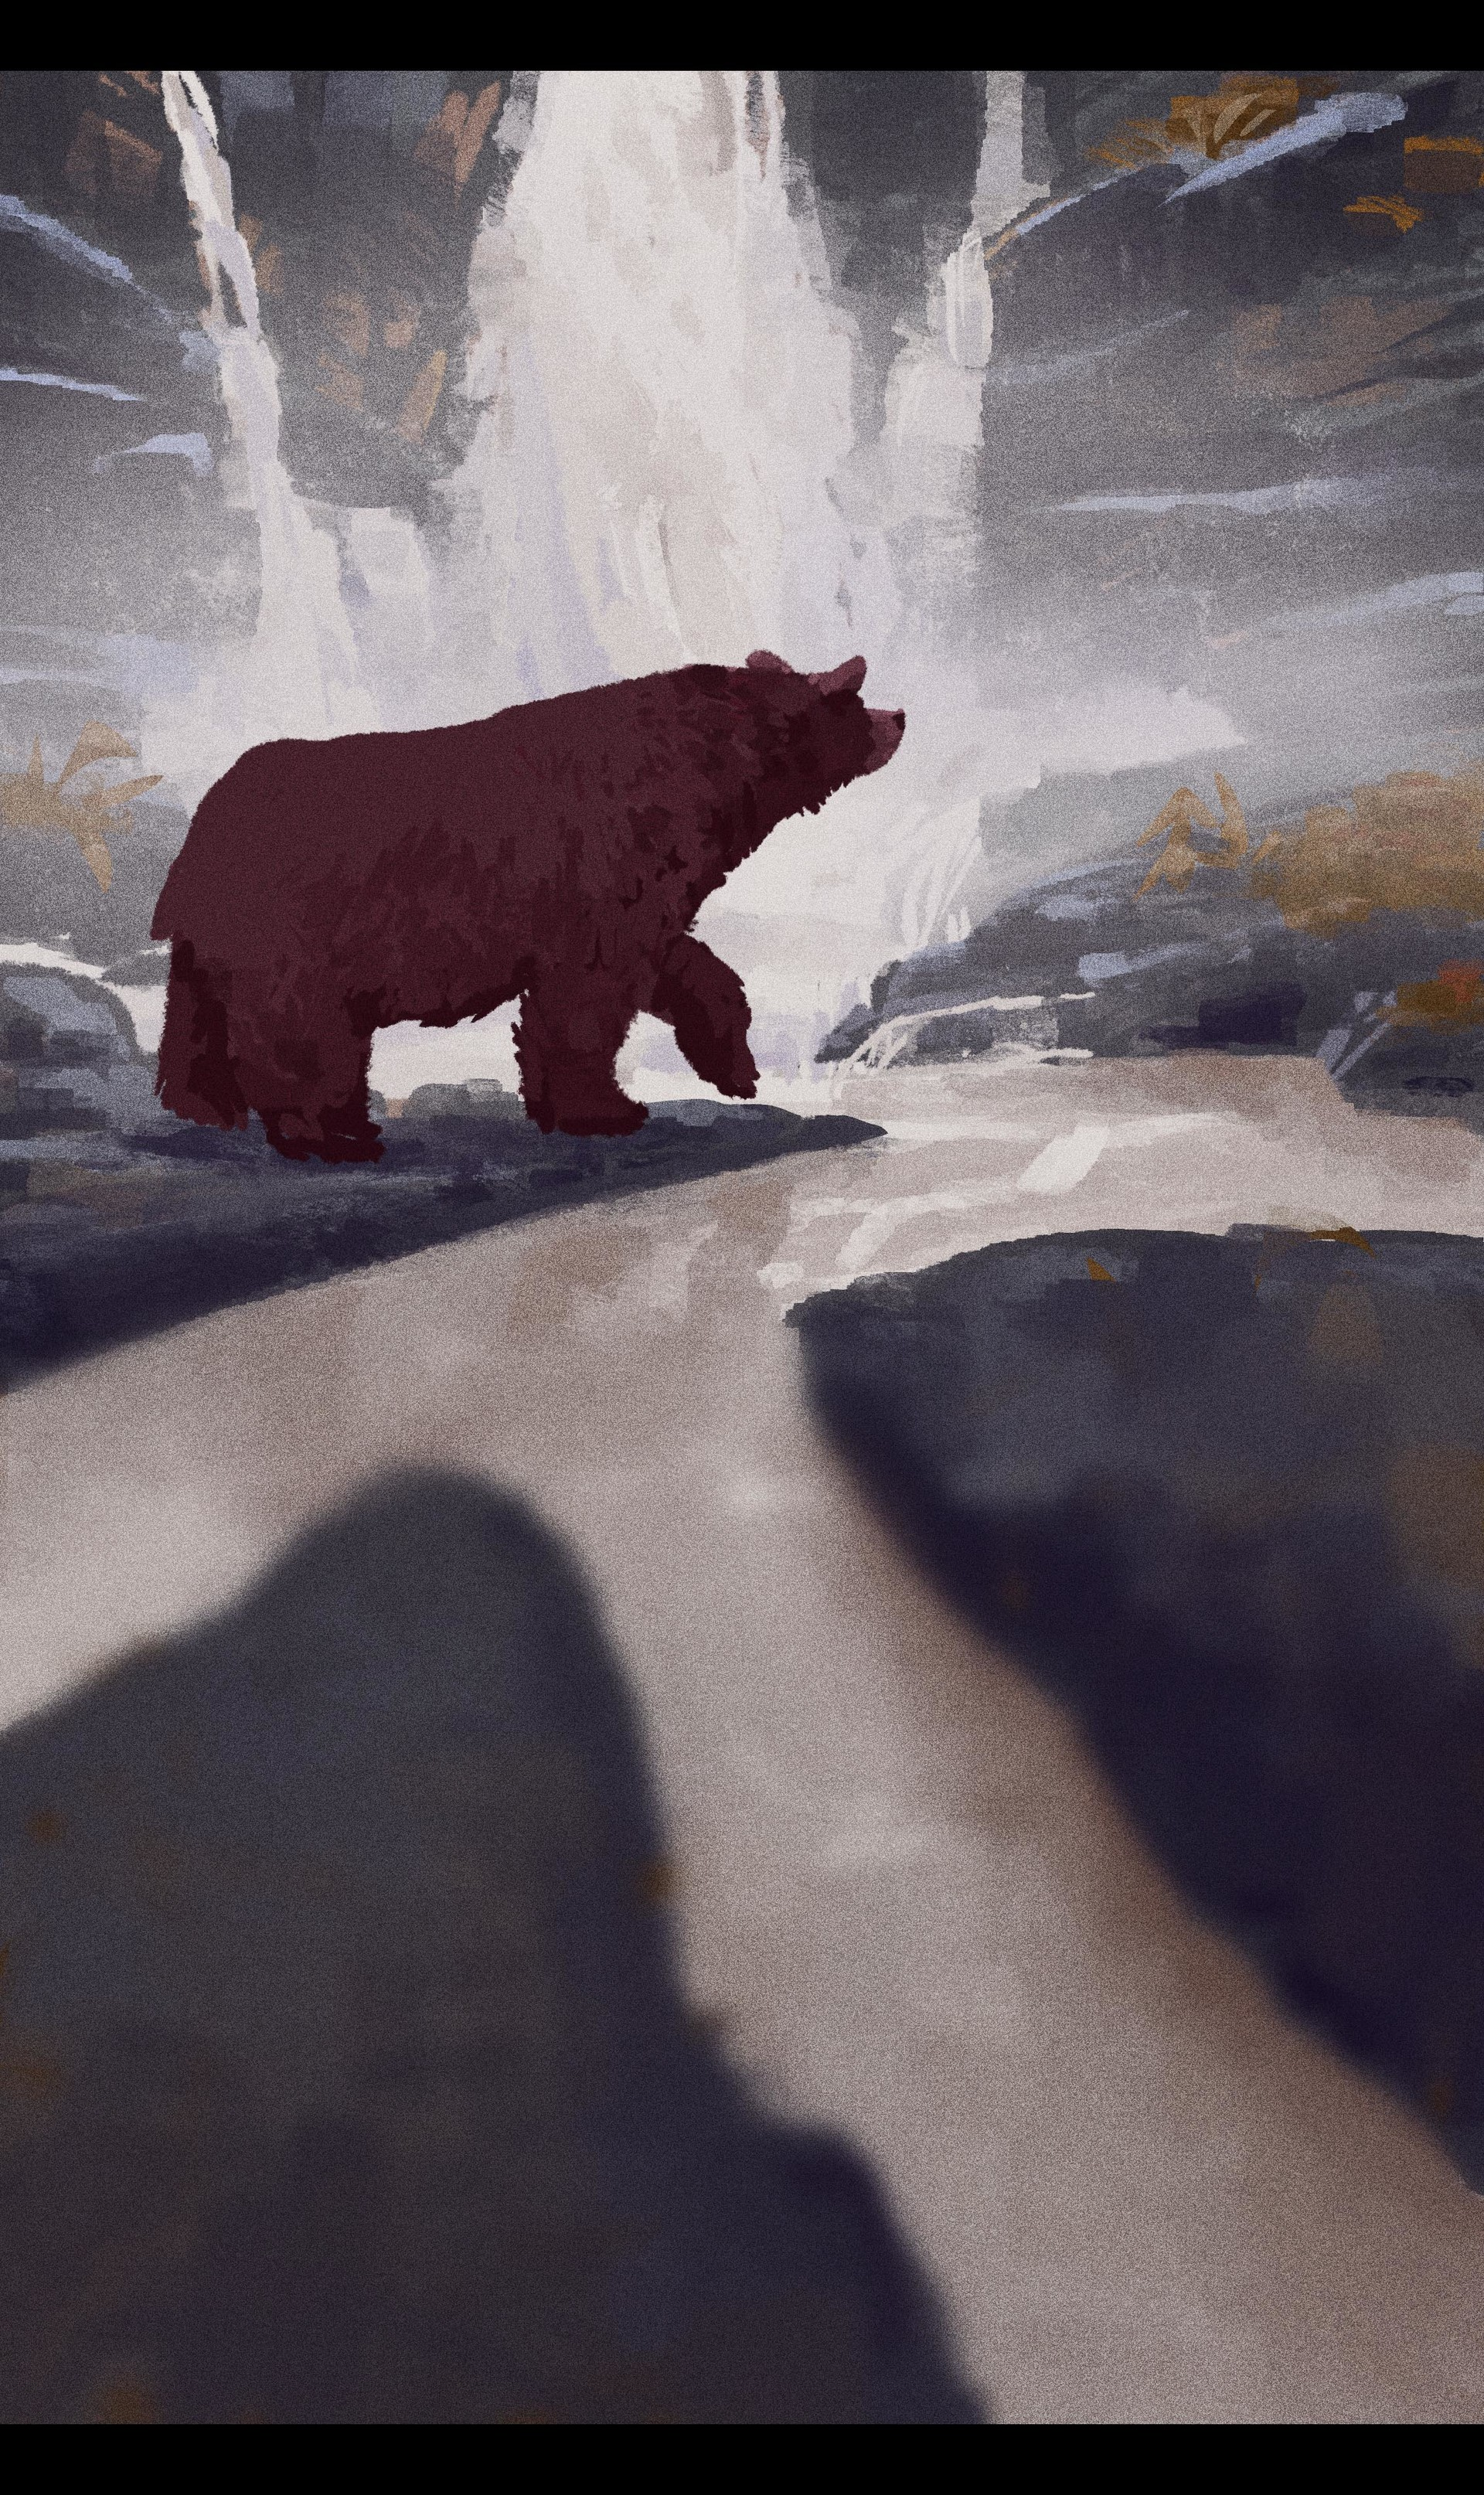 mike redman digital painting illustration Lonely Bear